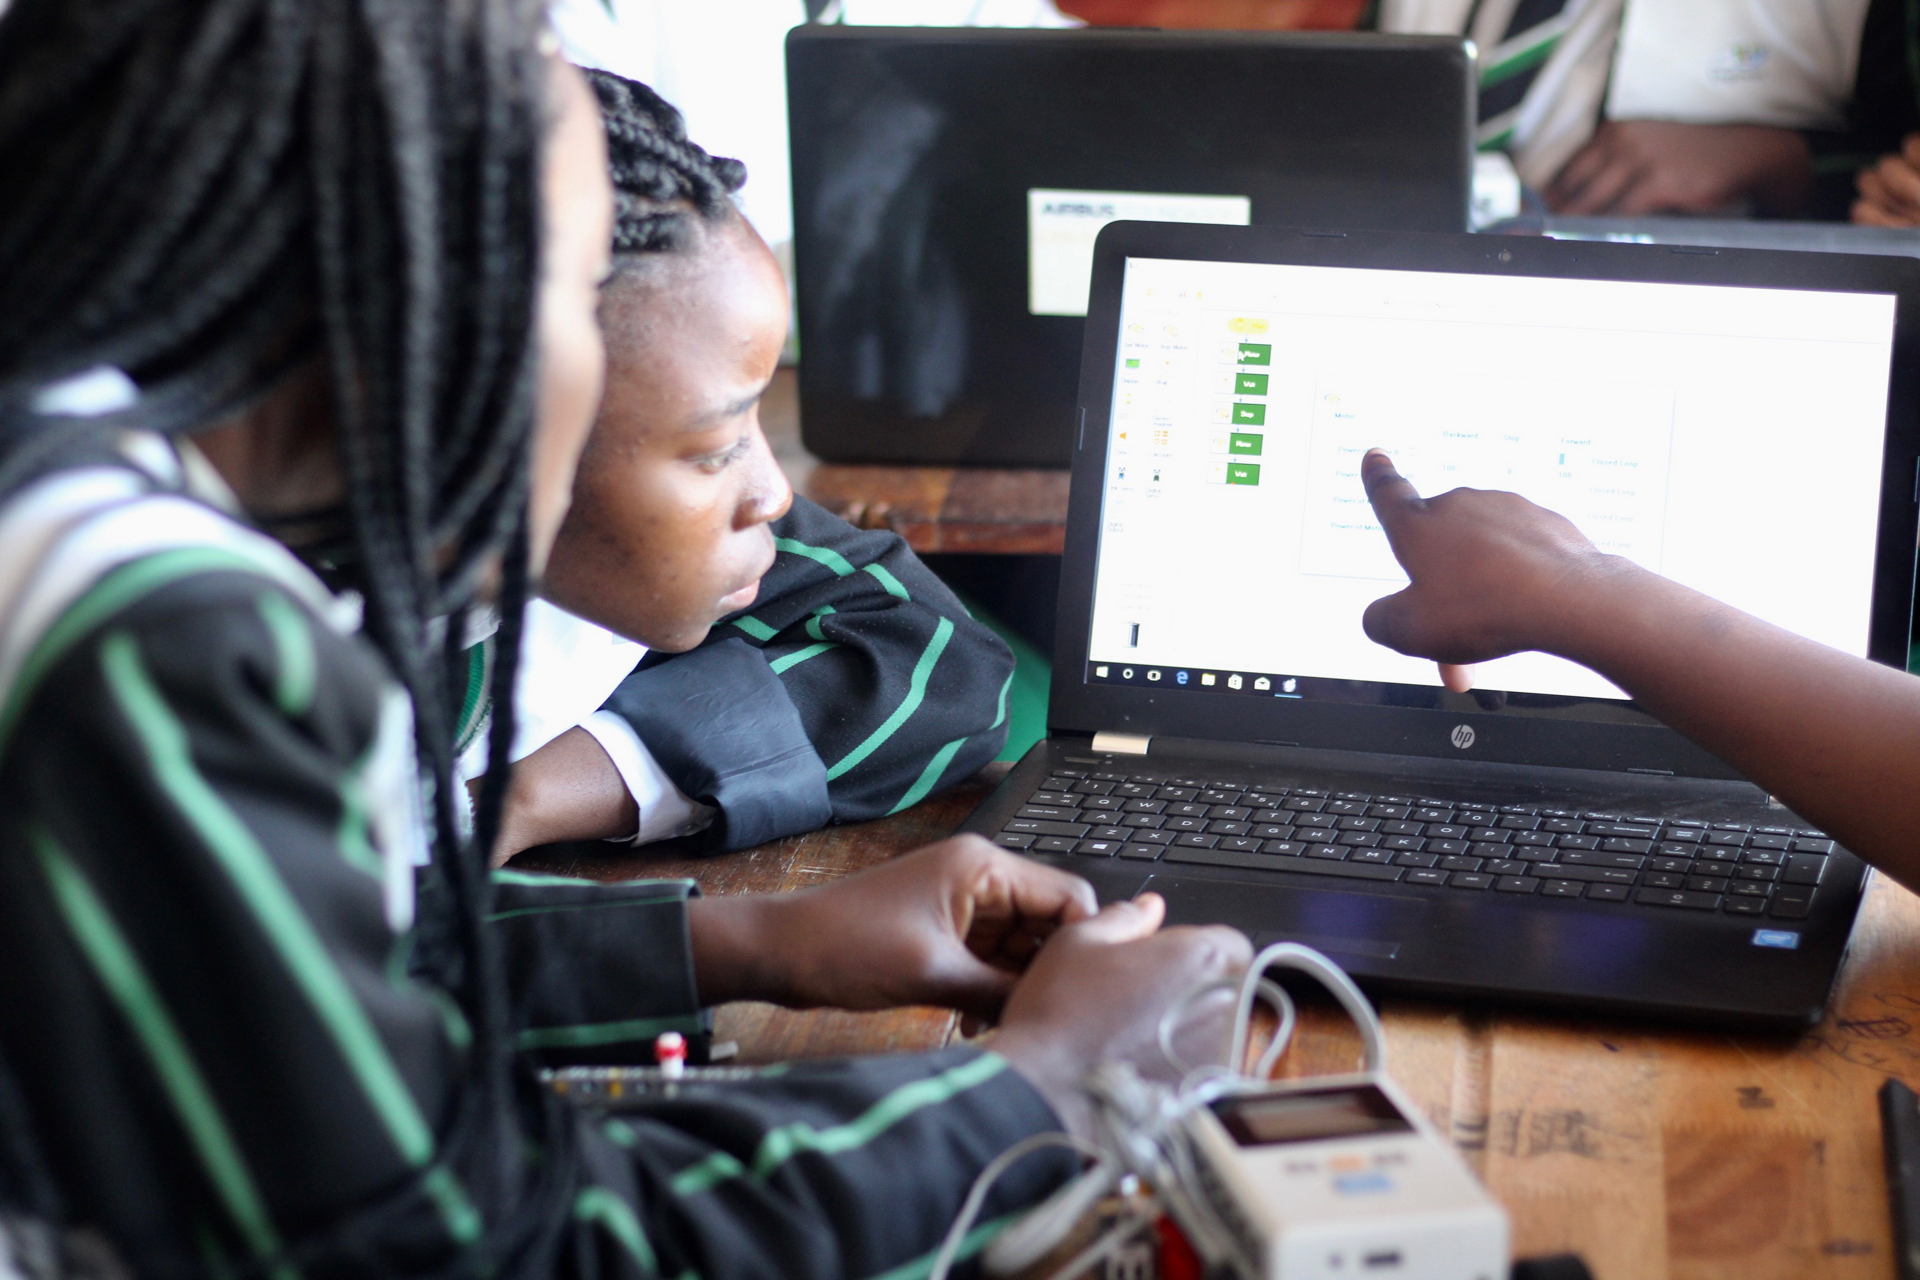 Students participate in a workshop organized by the Girls Fly Programme in Africa (GFPA) Foundation